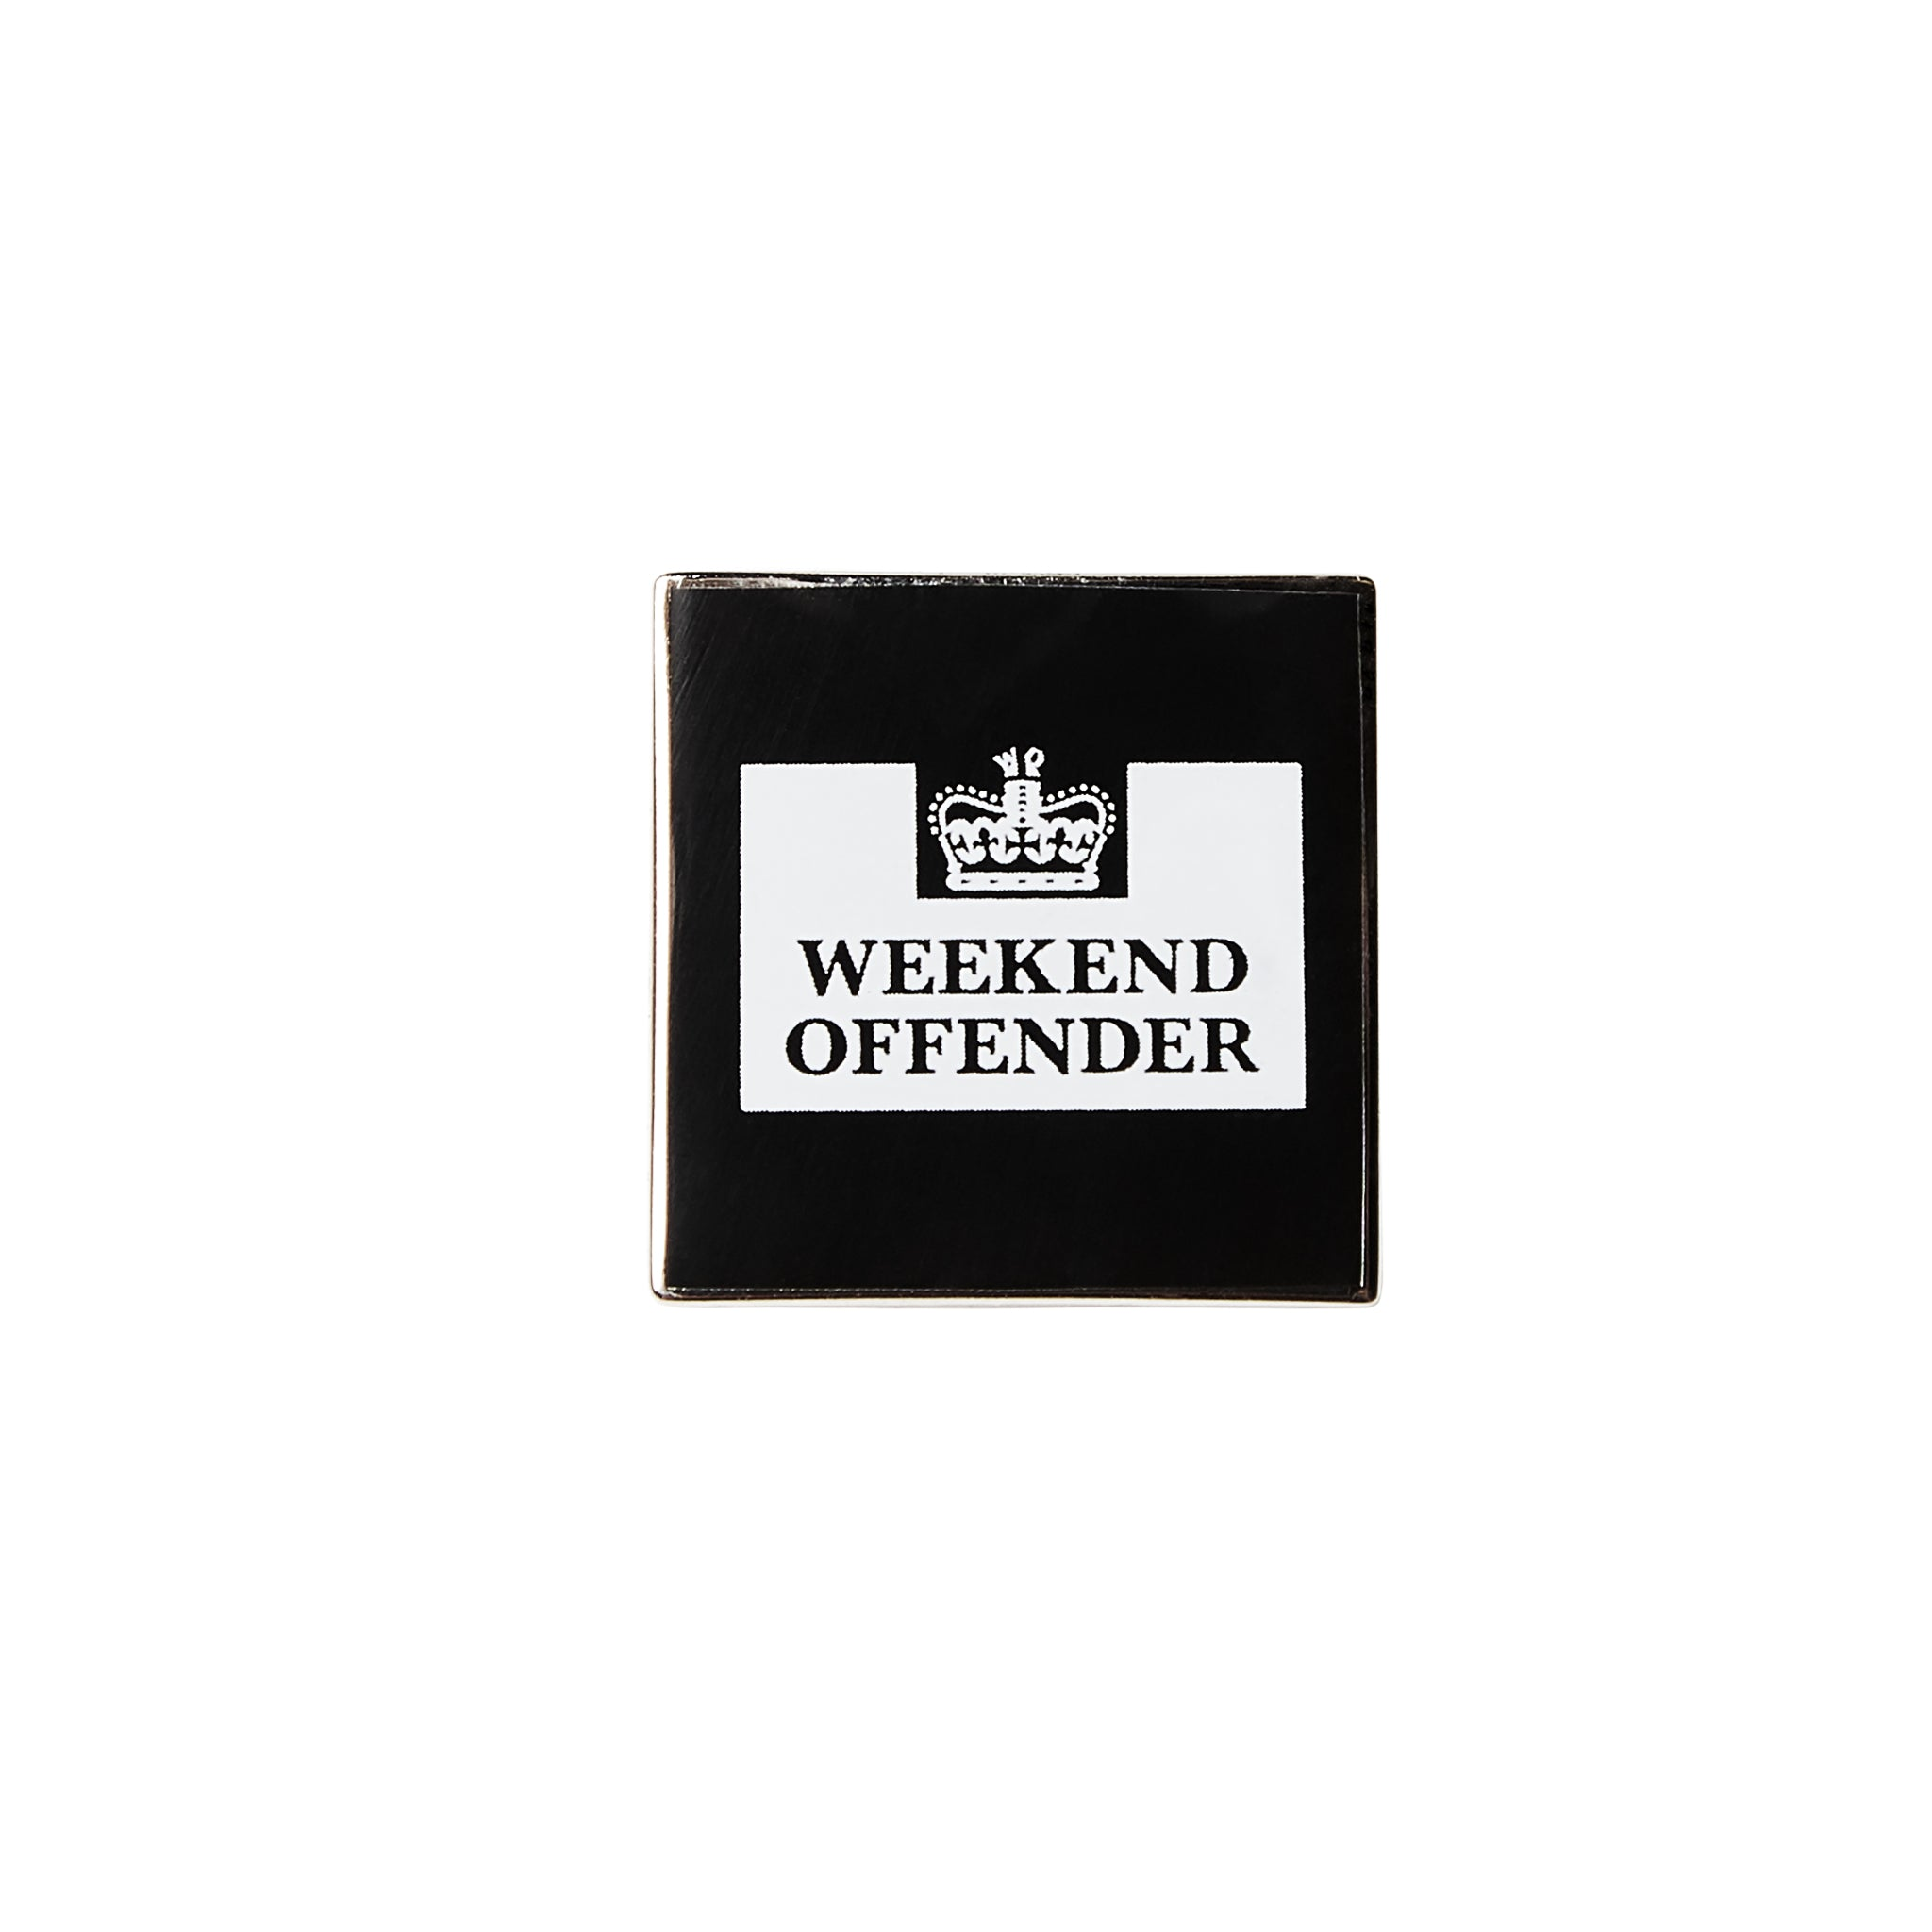 Weekend Offender Square Pin Badge